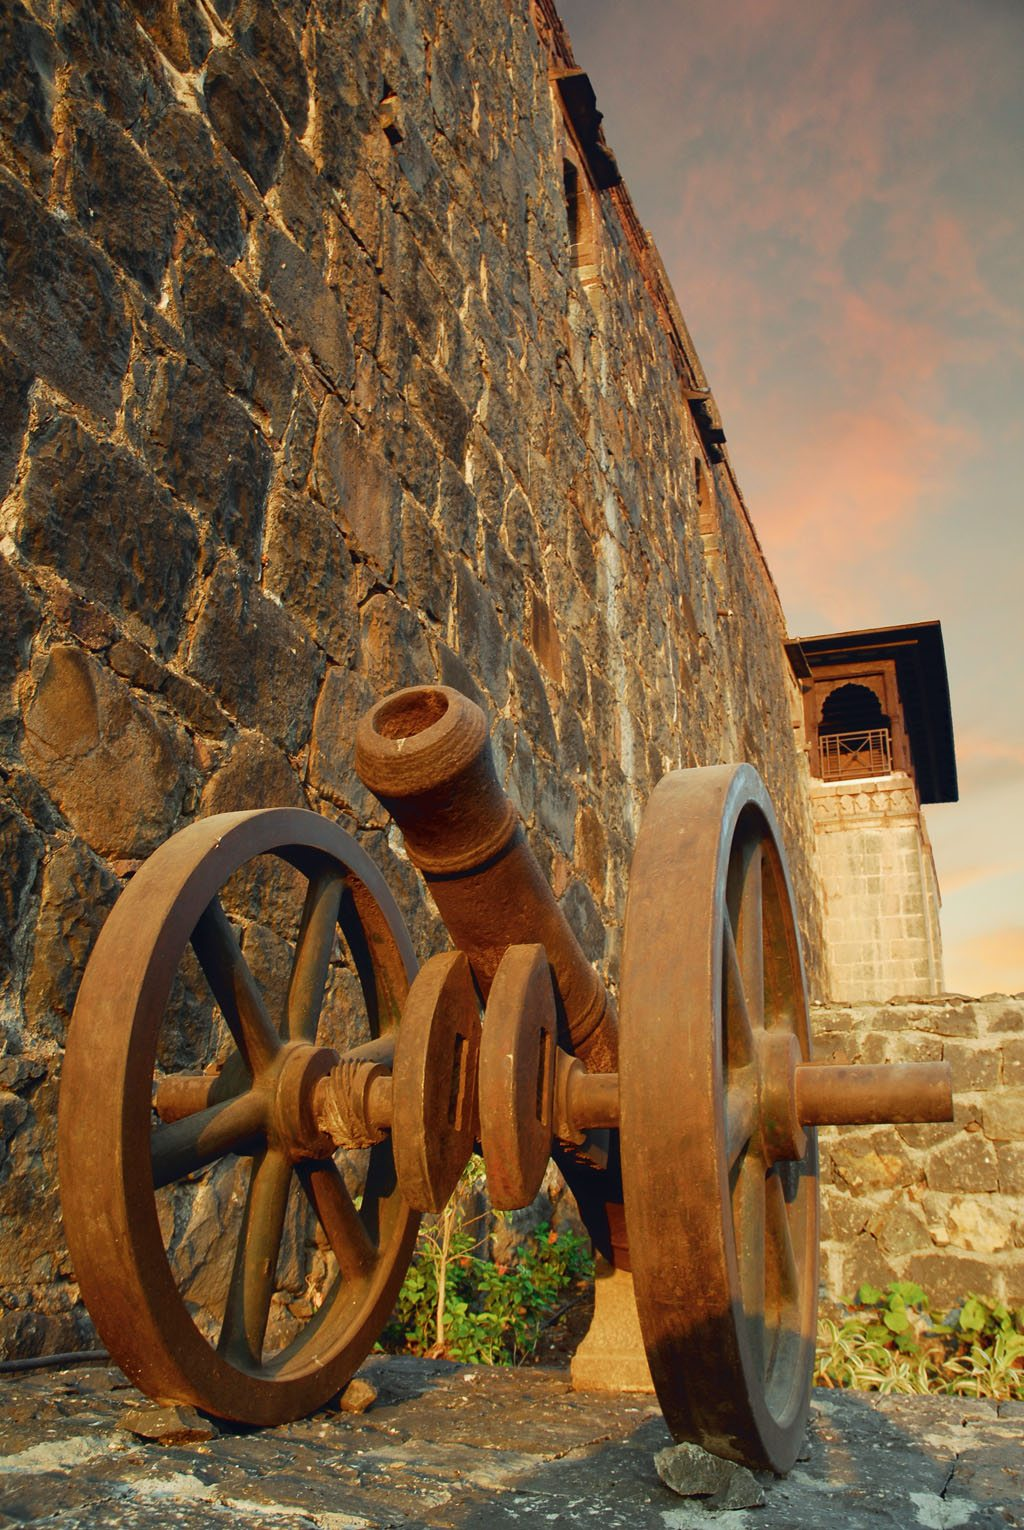 Fort Jadhavgarh hosts a rusty but well-maintained cannon. Photo courtesy Fort Jadhavgadh